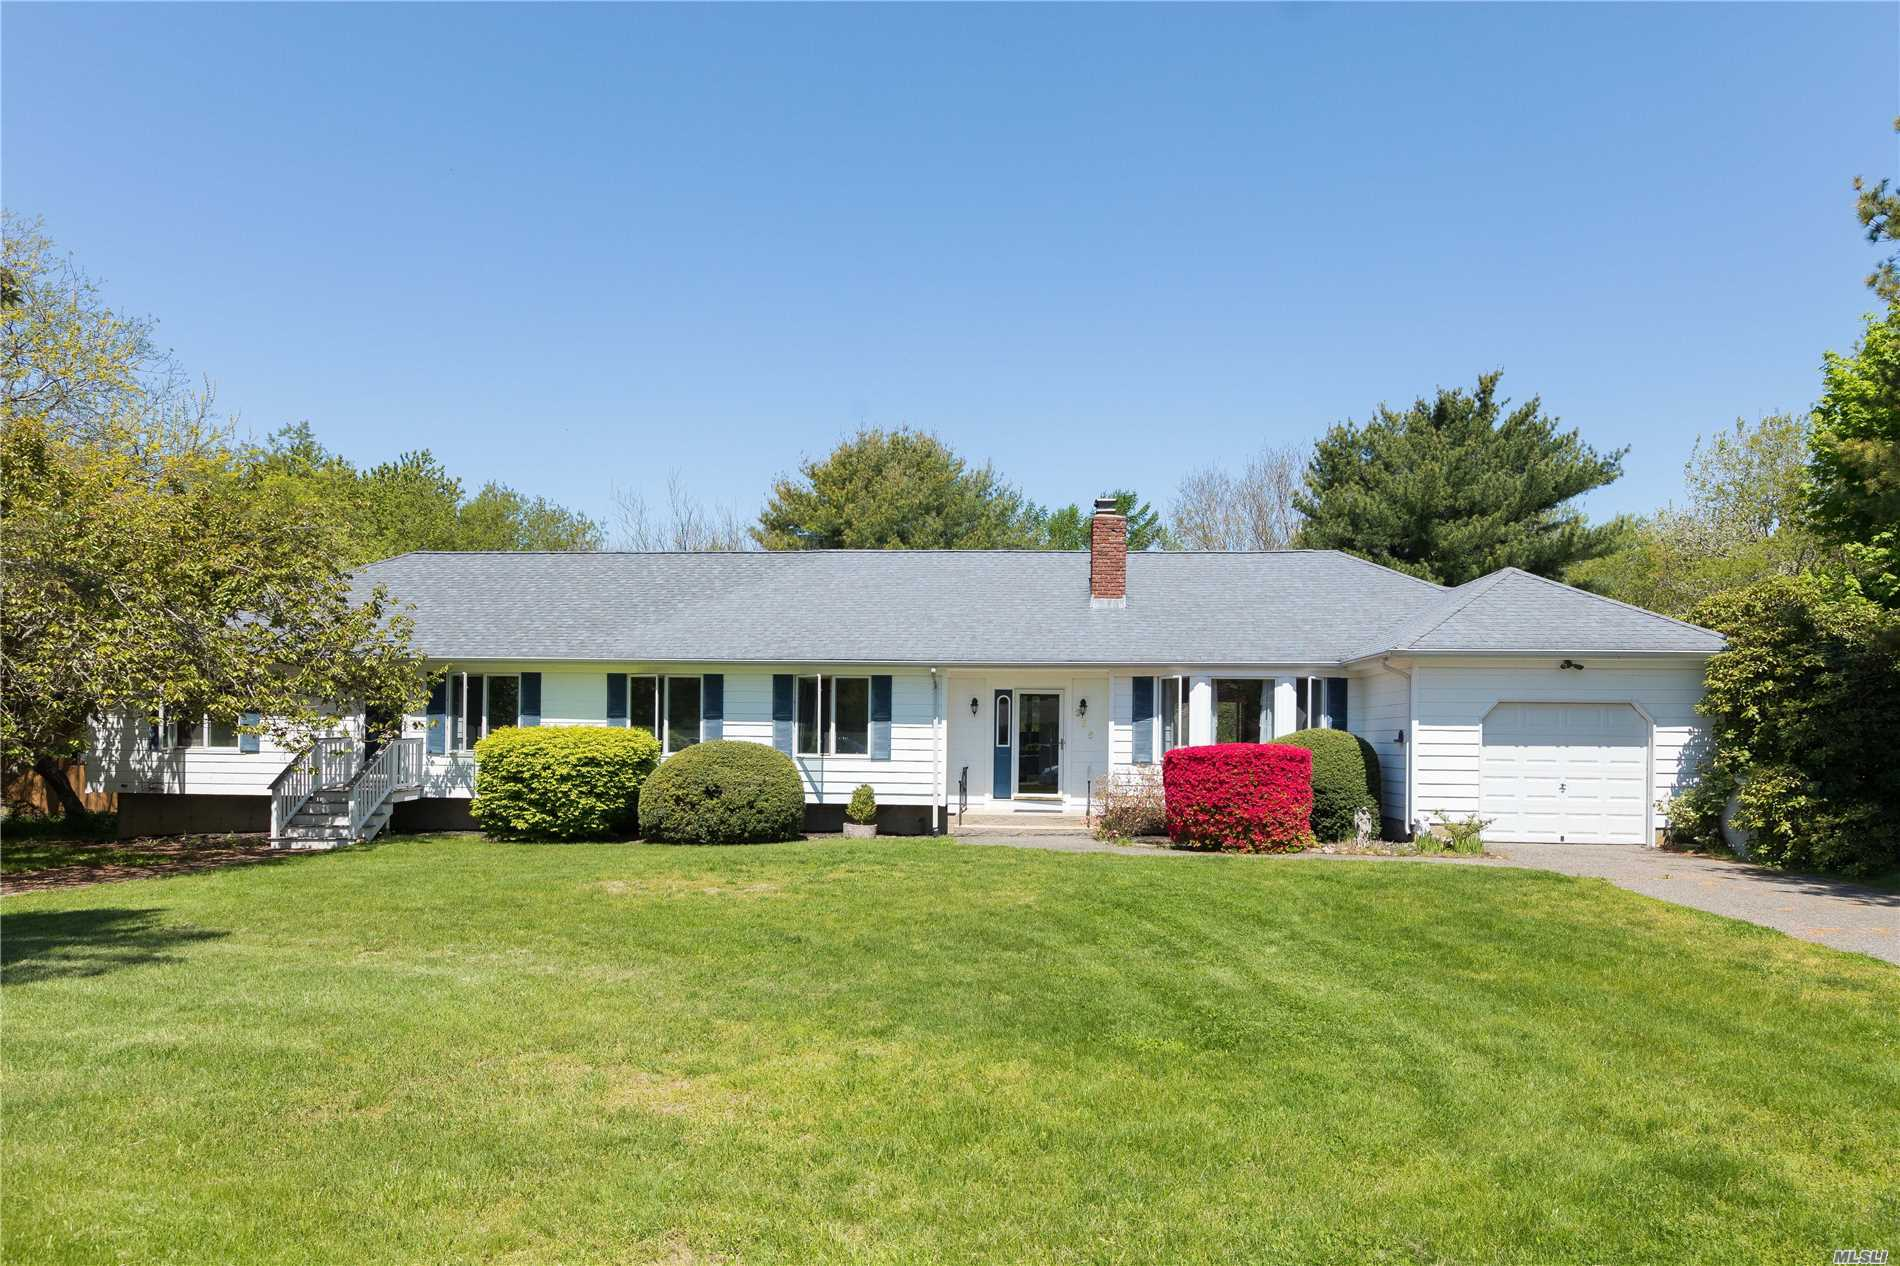 A sprawling 4 bedroom, 3 bath Ranch with many opportunities, situated on a shy acre just a short distance from the heart of Southold Village. Beautifully landscaped park-like back yard with plenty of room for a pool. Close to shopping, restaurants, transportation And Schools. Separate guest wing, possible mother/daughter.